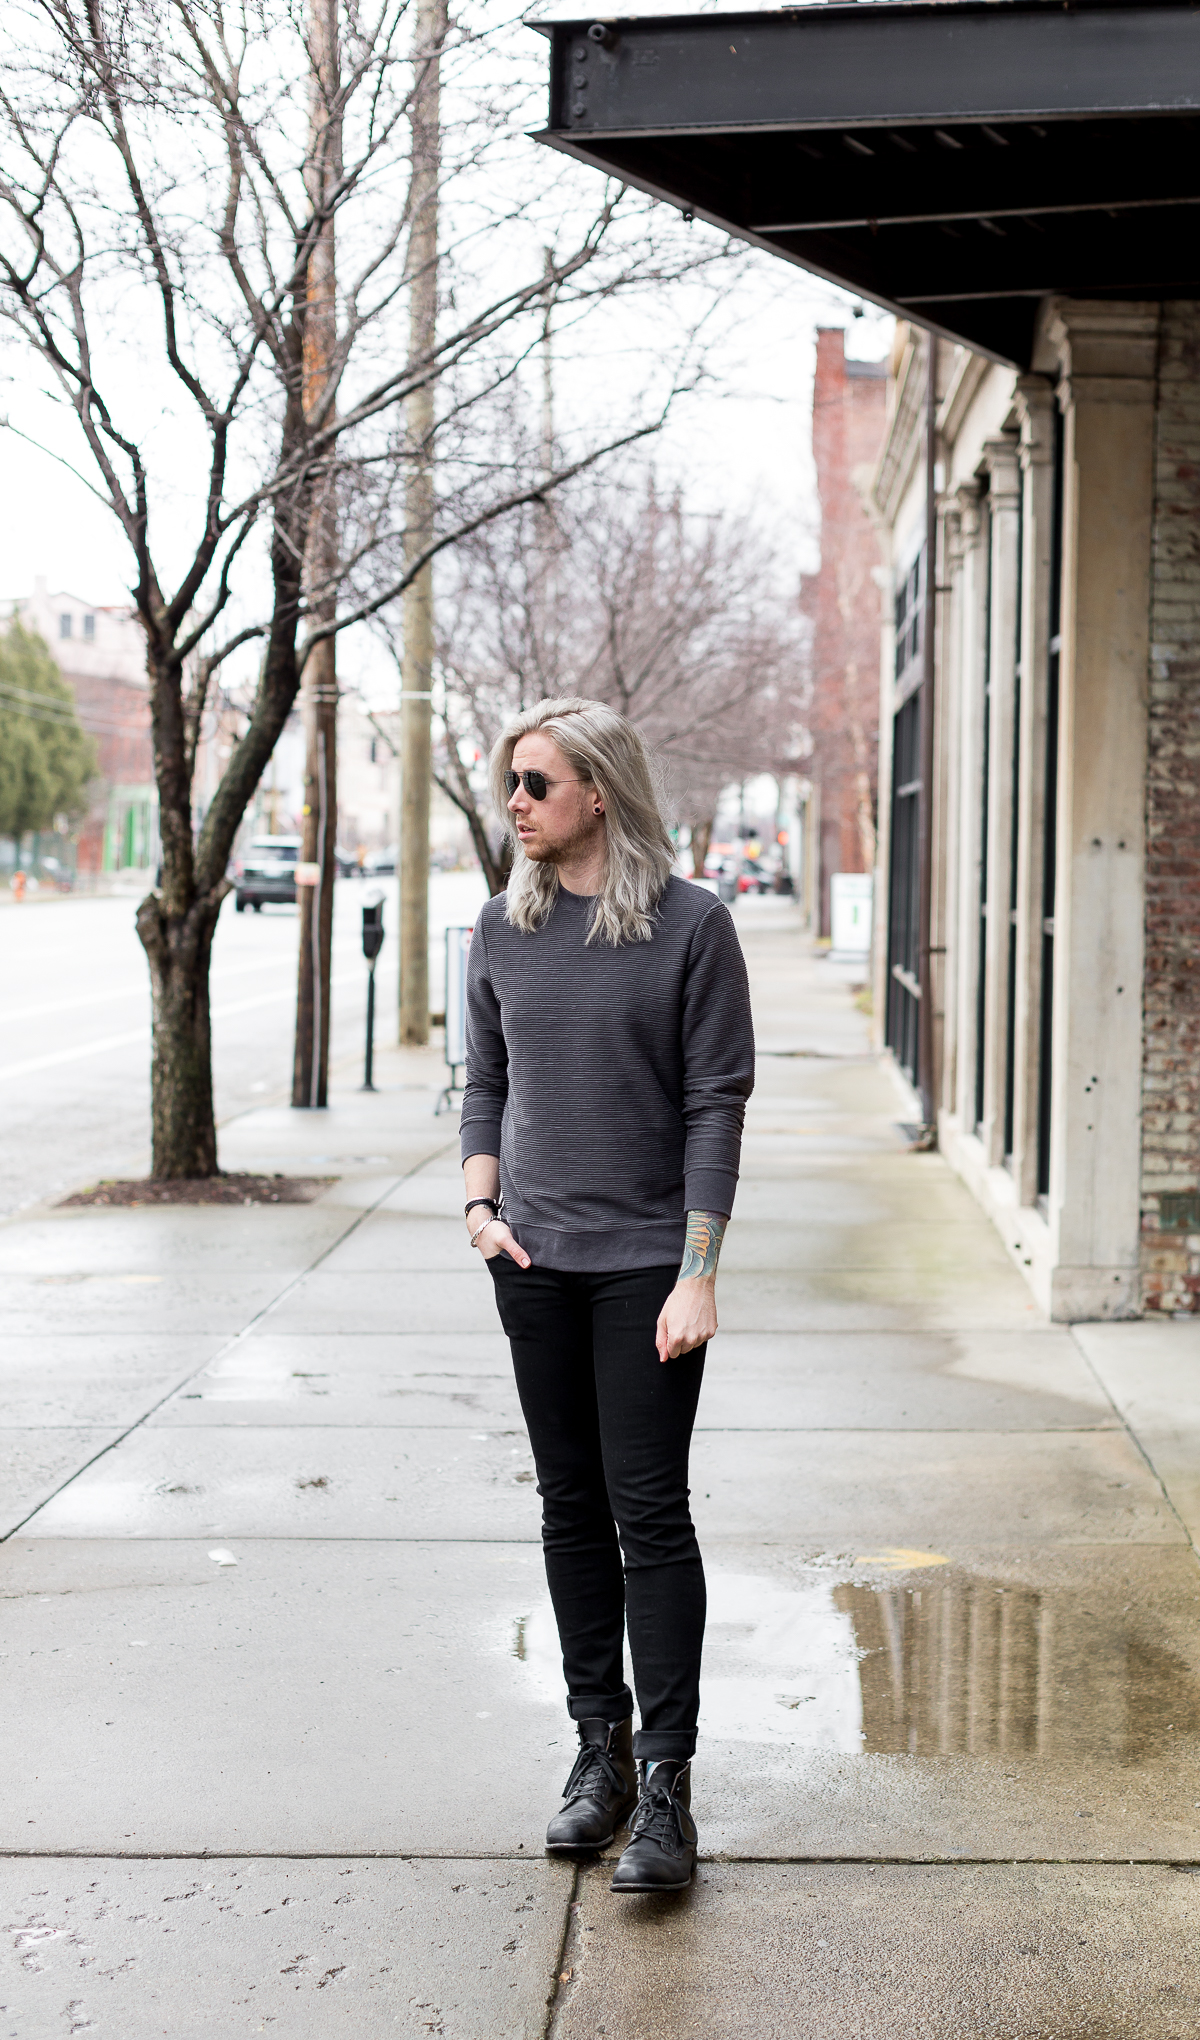 hm sweatshirt, mens affordable style, louisville blogger, kentucky blogger, mens blogger via @TheKentuckyGent